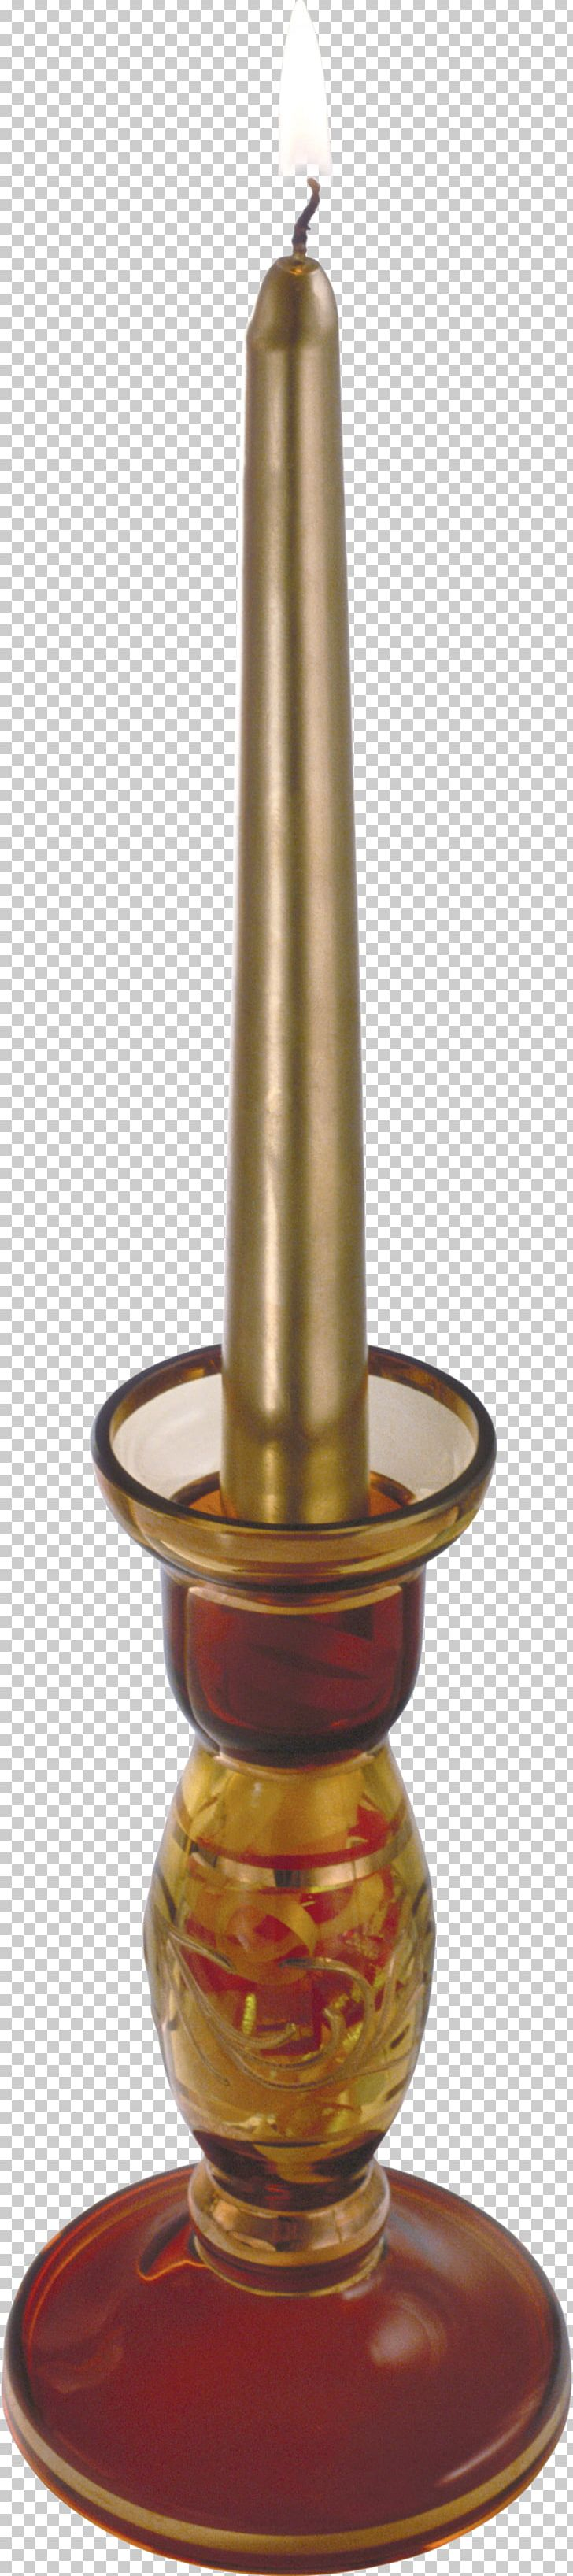 Candlestick PNG, Clipart, Advertising, Brass, Candle, Candlestick, Coreldraw Free PNG Download